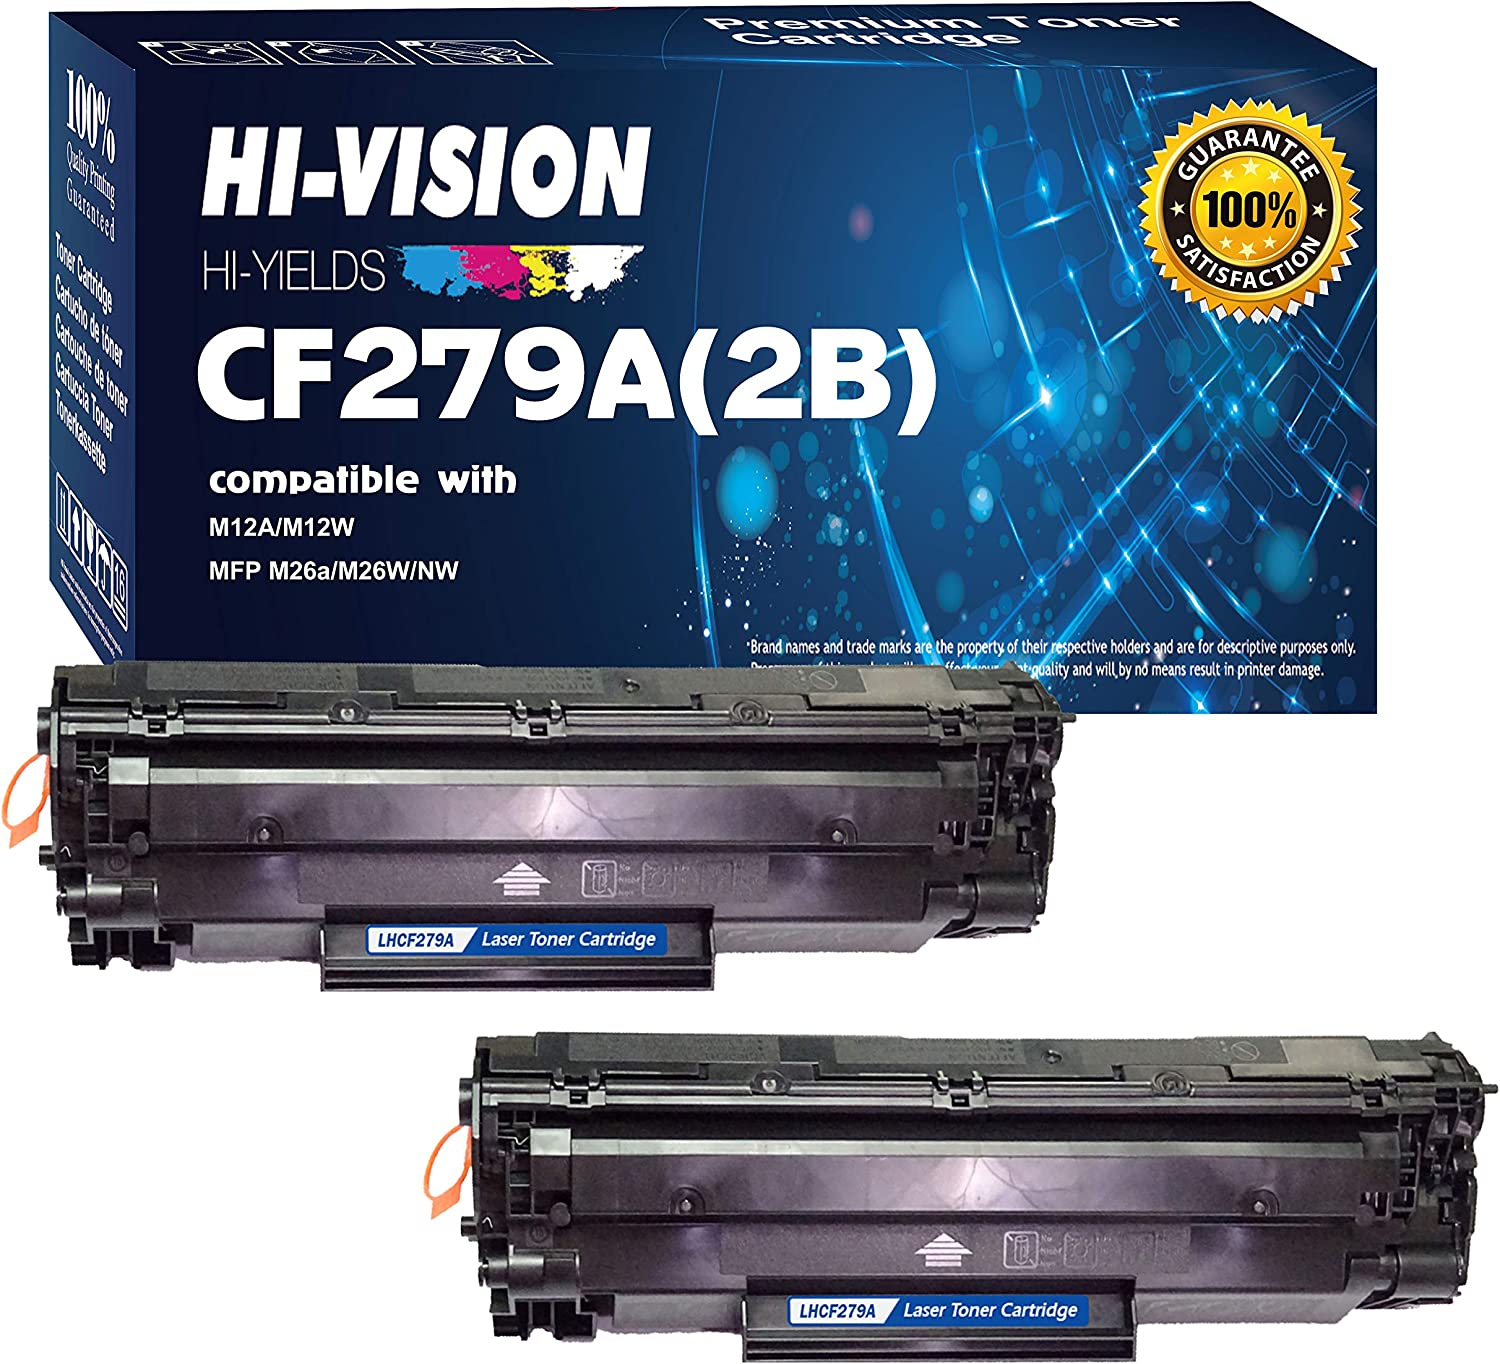 (2 Black-Pack) HI-VISION HI-YIELDS Compatible 79A CF279A Toner Cartridge Replacement [1,000 Pages Each], Used in HP Laserjet Pro M12w, M12a, MFP M26nw, M26a